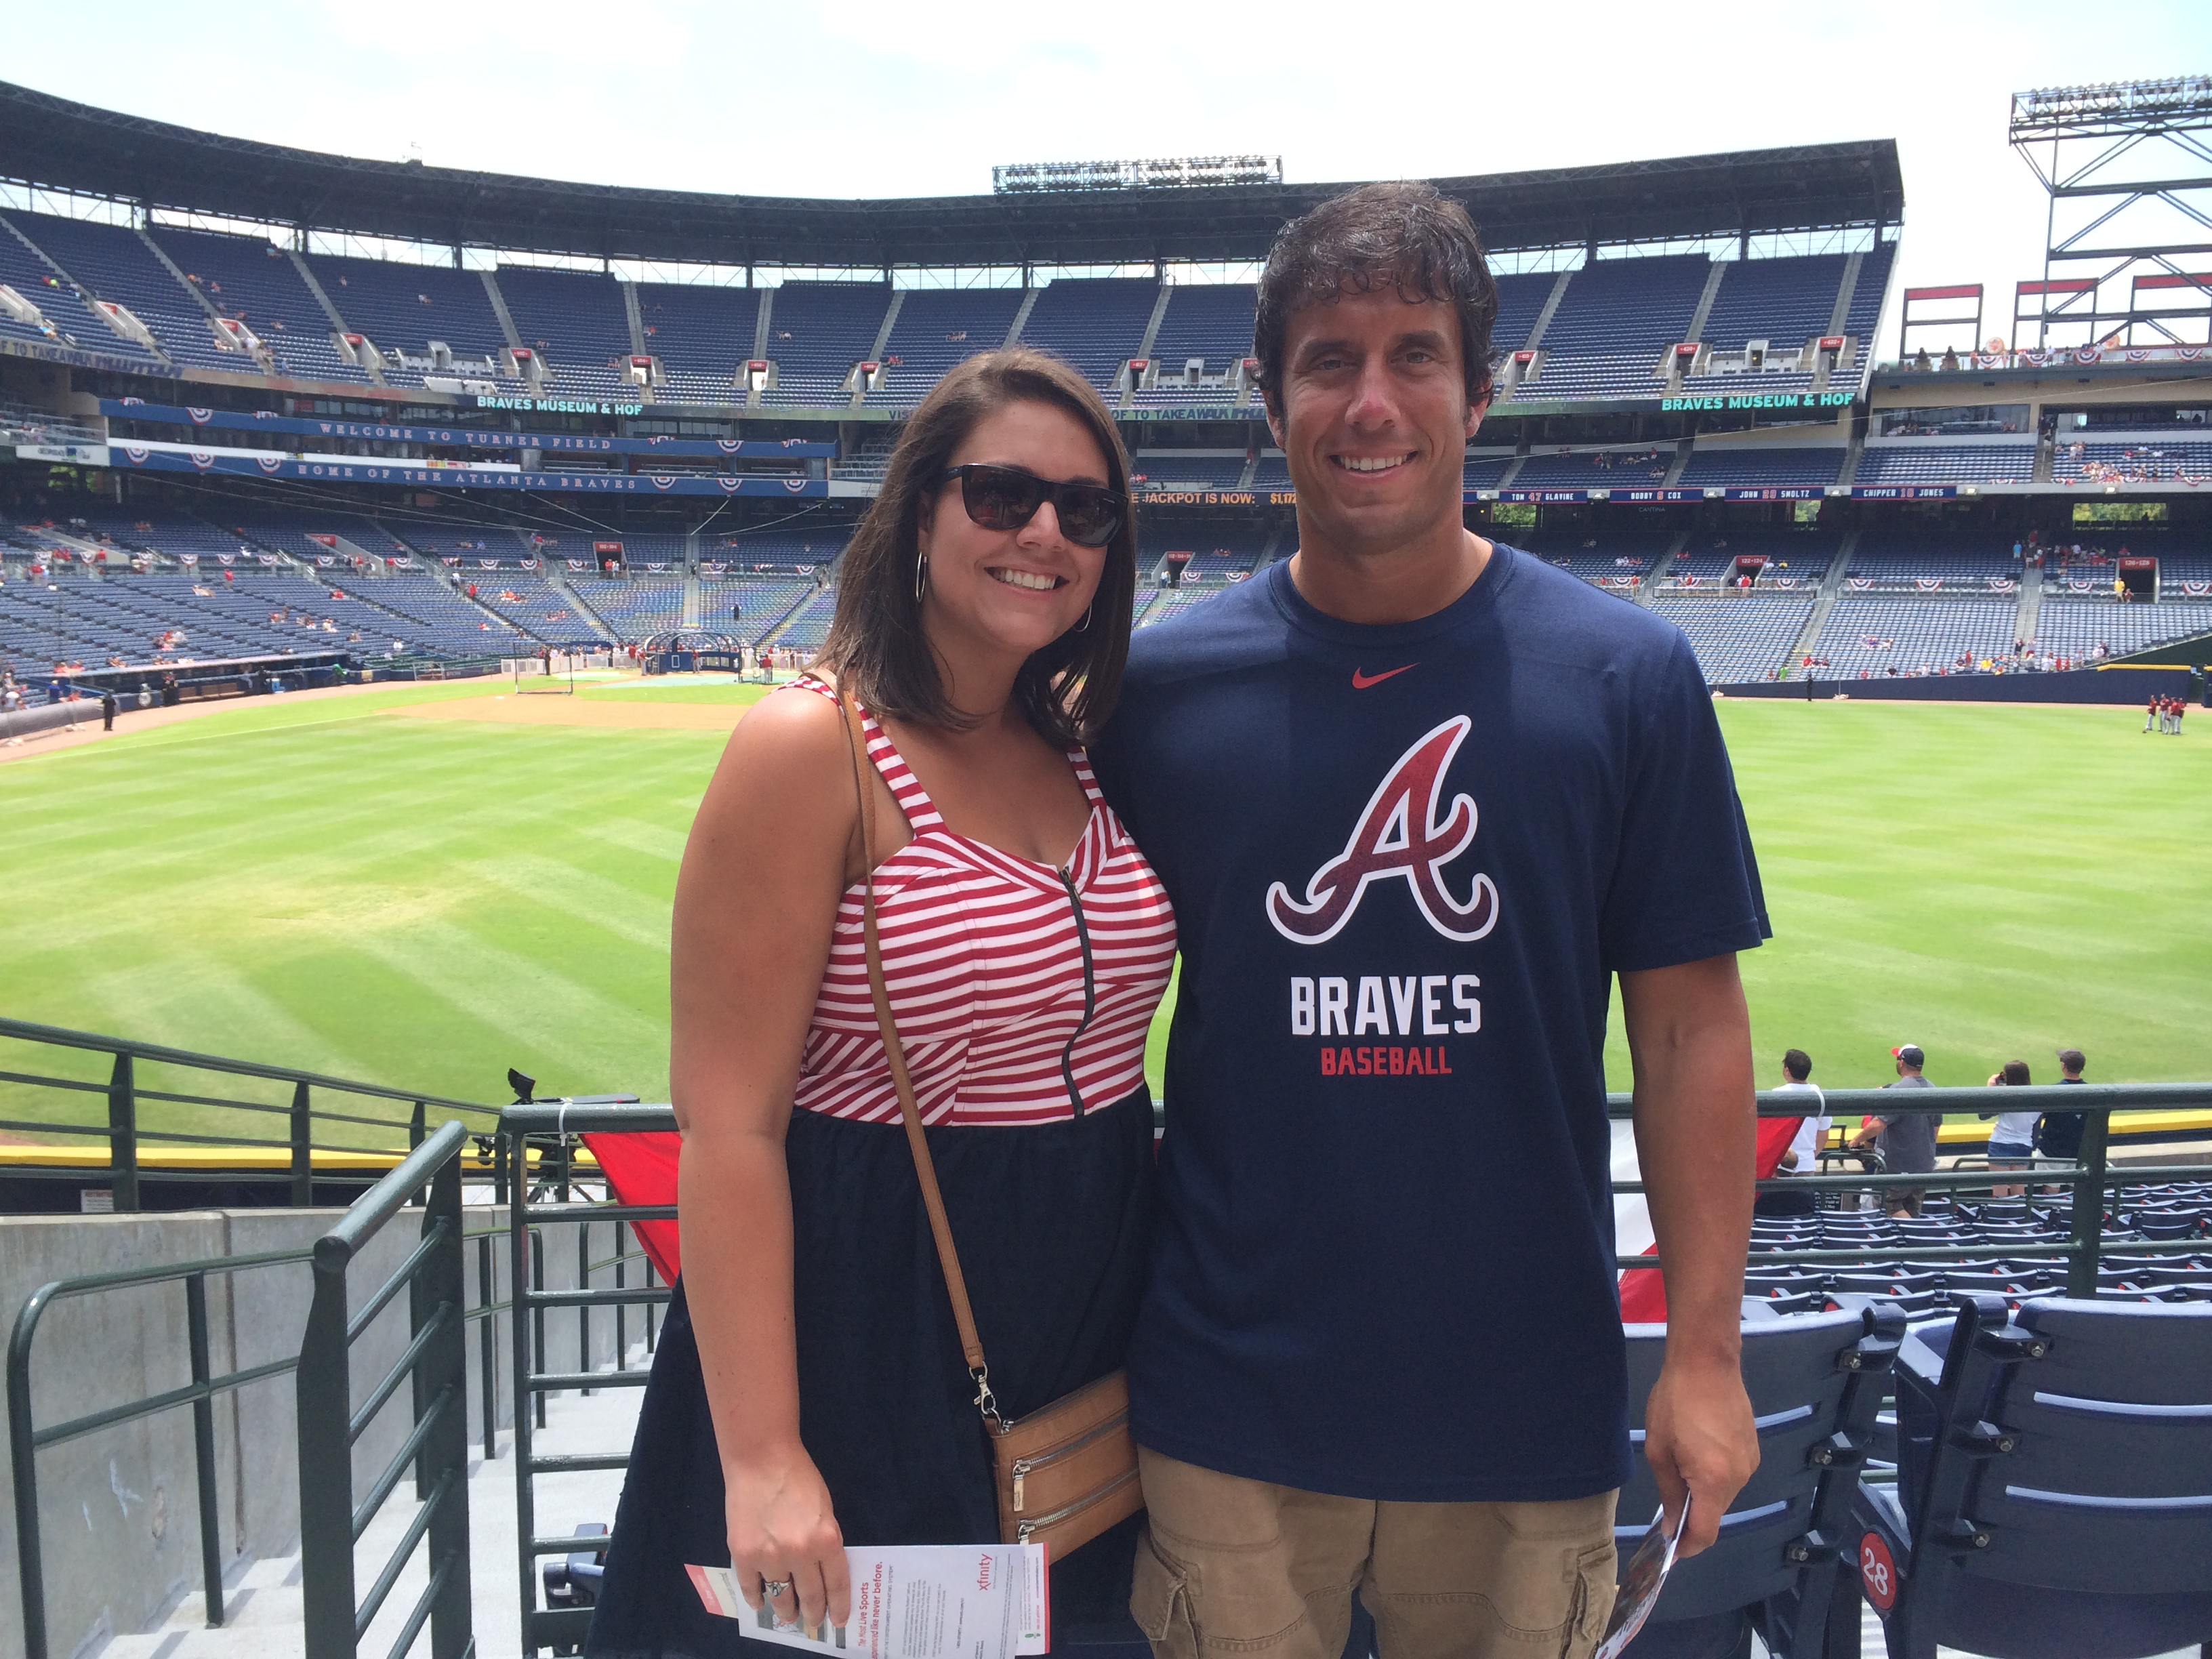 Sidney and I at Turner Field in Atlanta last year.